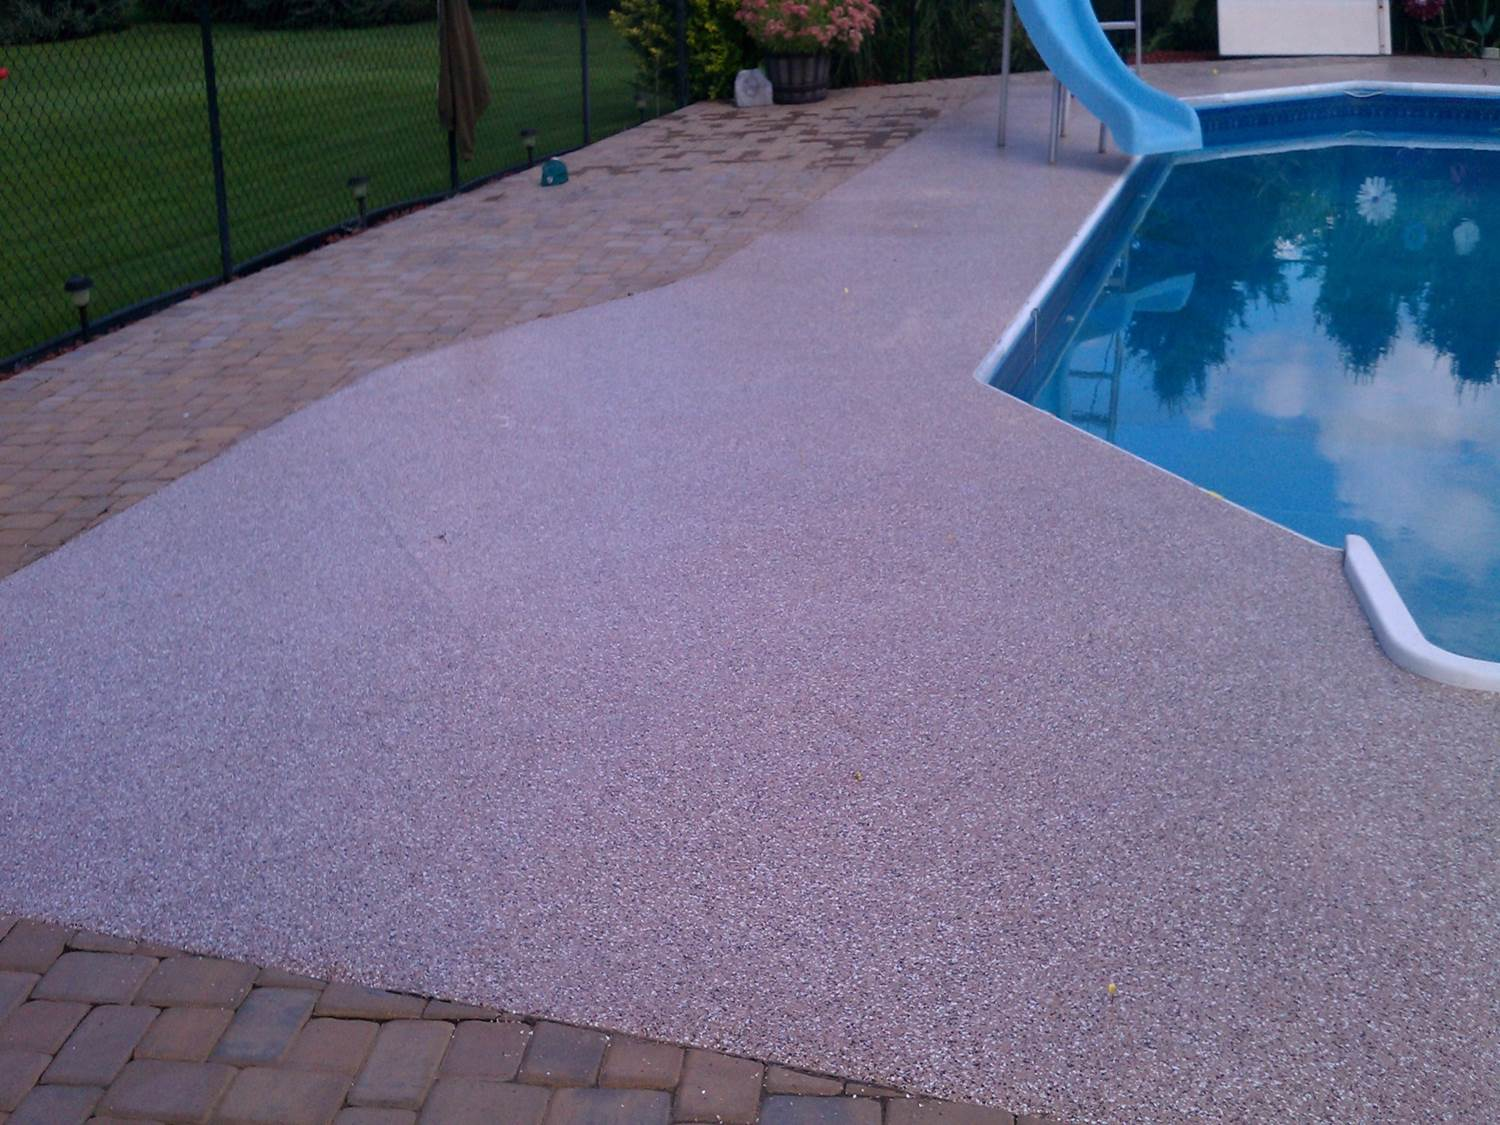 Granitex™ around the pool